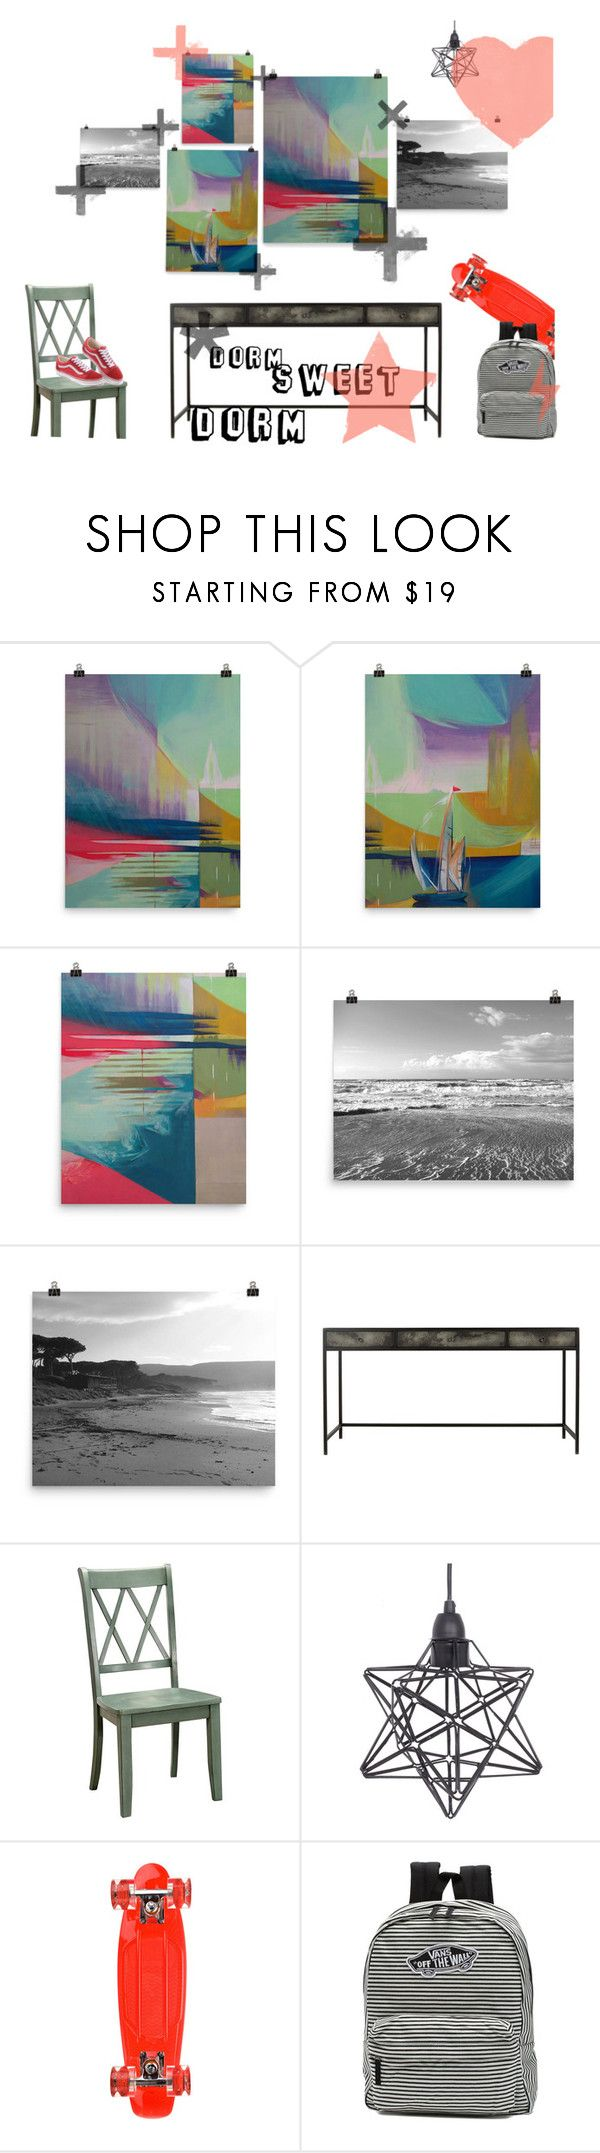 Set of decor inspired by dorm life. Modern gallery wall, combination of abstract painting and black and white beach photo decor. #gallerywall #wallart #walldecor #dormdecor #dorm #abstractart Dorm Sweet Dorm by kacix on Polyvore featuring interior, interiors, interior design, home, home decor, interior decorating, Crystal Art, Vans, Sunset Skateboards and modern